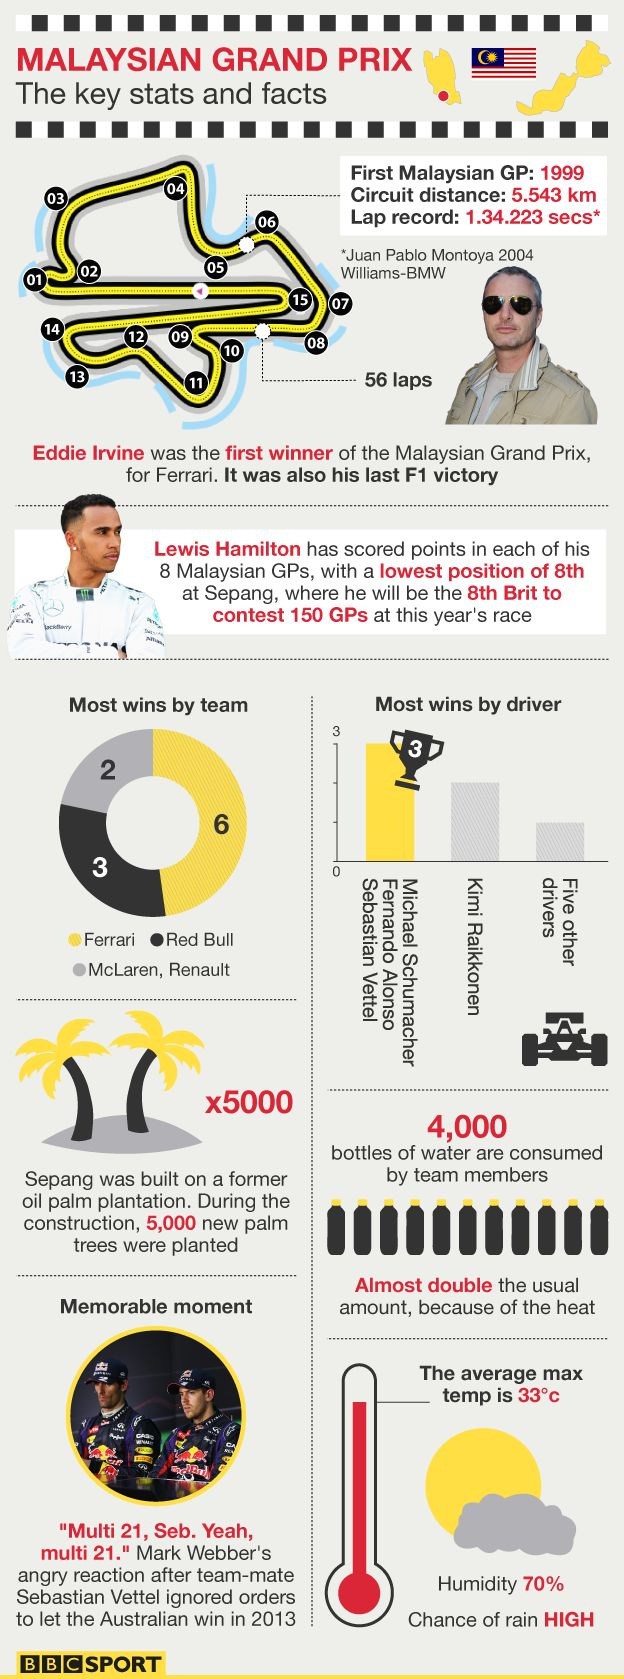 Malaysian Grand Prix facts